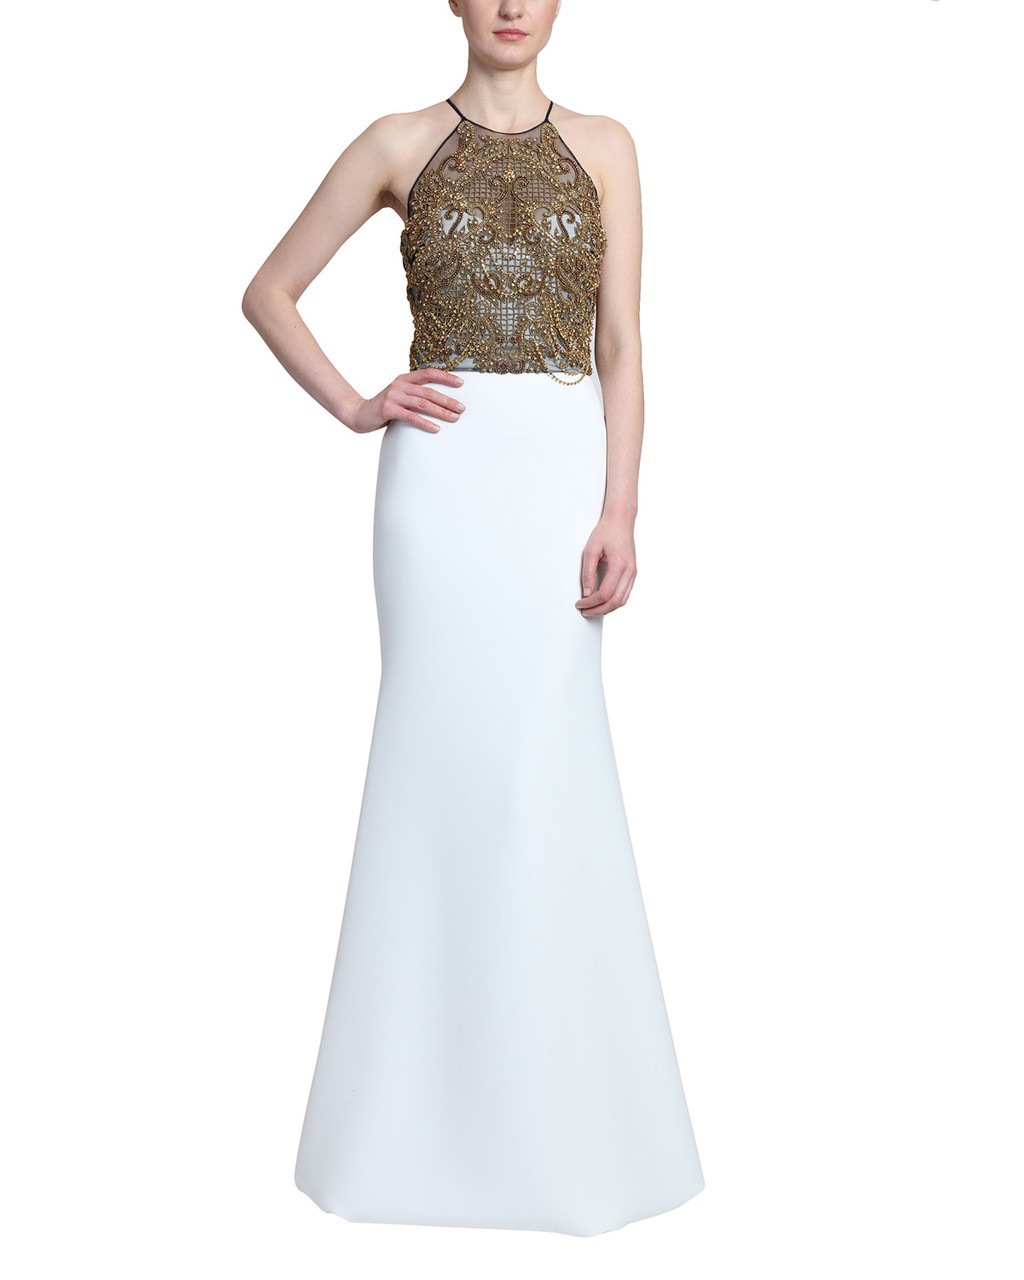 7bd1a80ea8 Beaded Racer Ivory Tulle Gown by Badgley Mischka